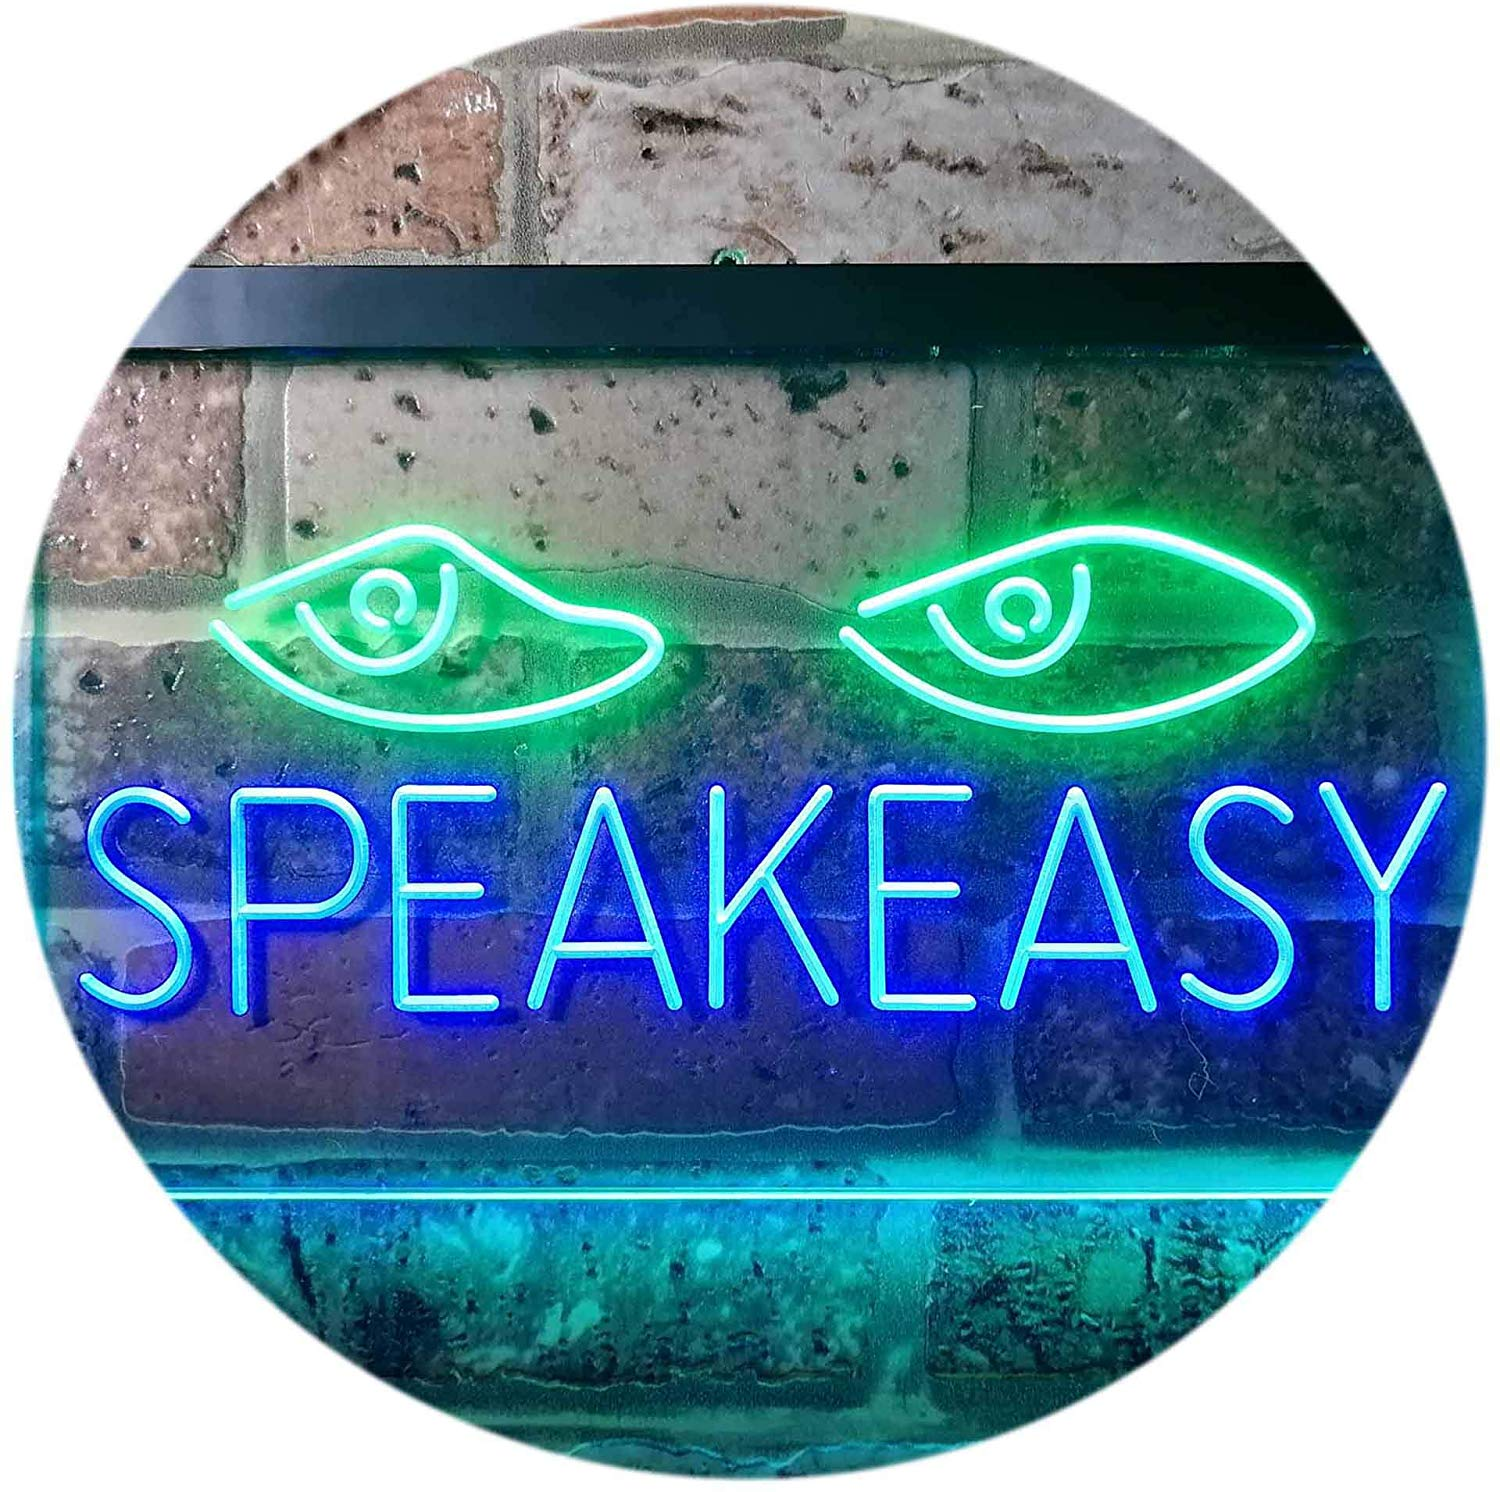 Speakeasy Bar LED Neon Light Sign | Way Up Gifts